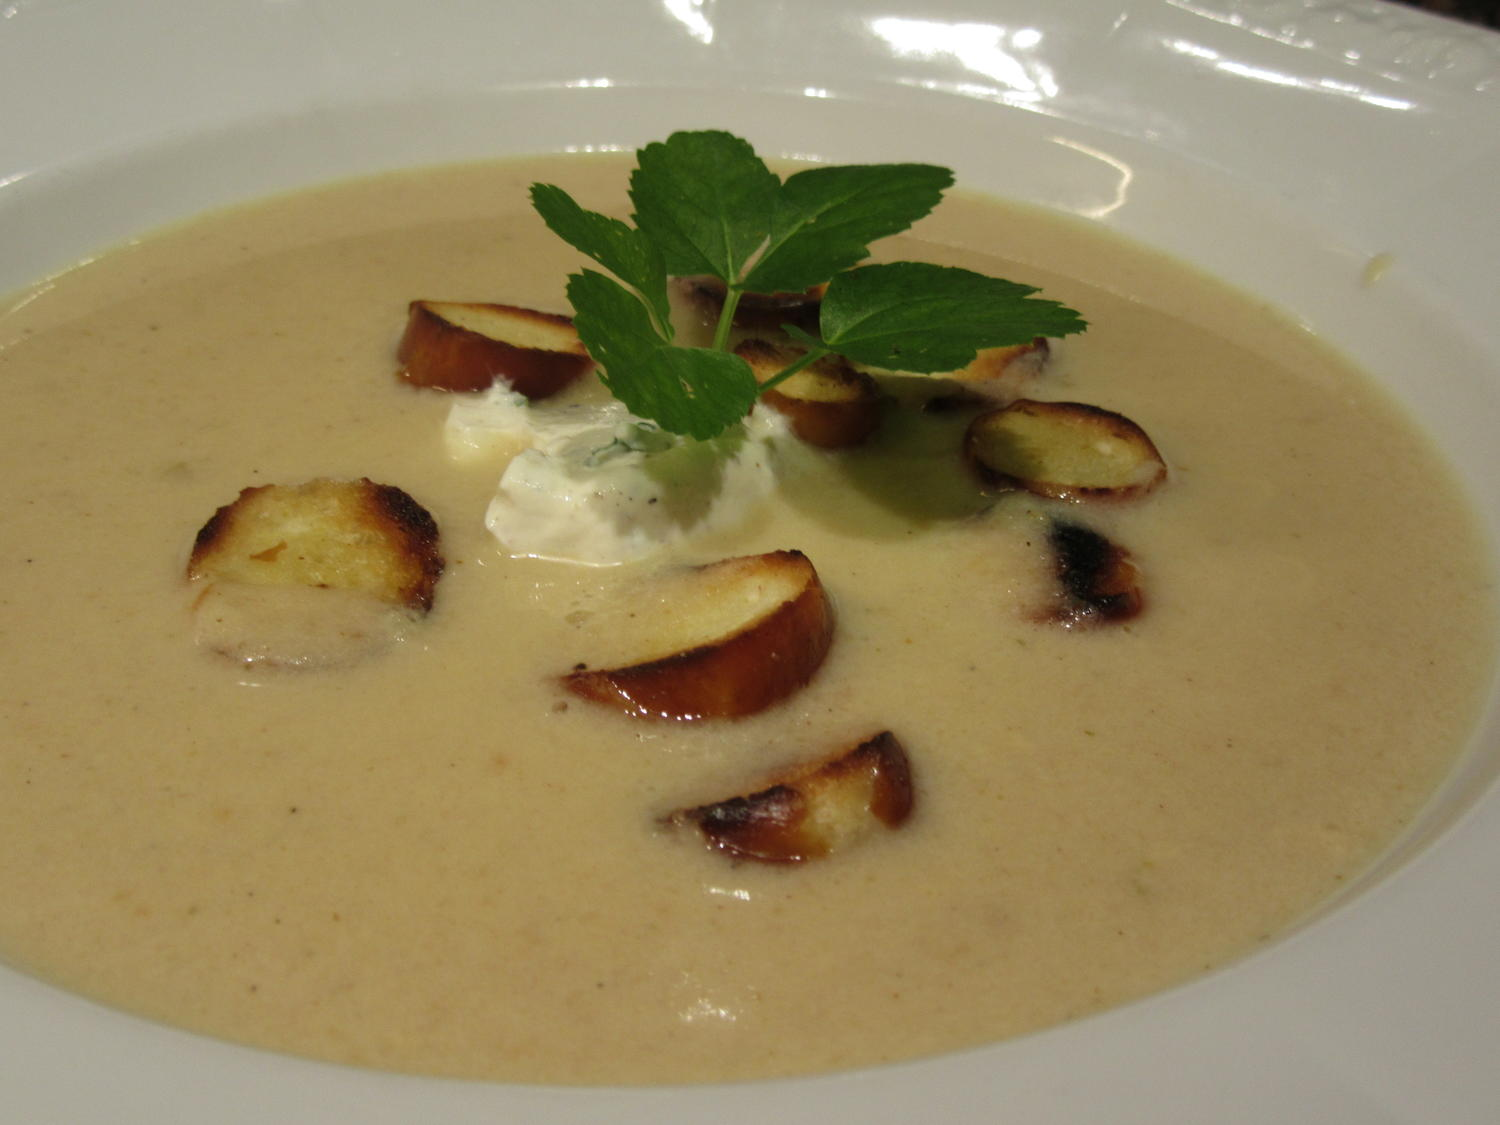 Apfel Cidre Suppen Apfelmost Cidre Suppe Mit Brezn Croutons